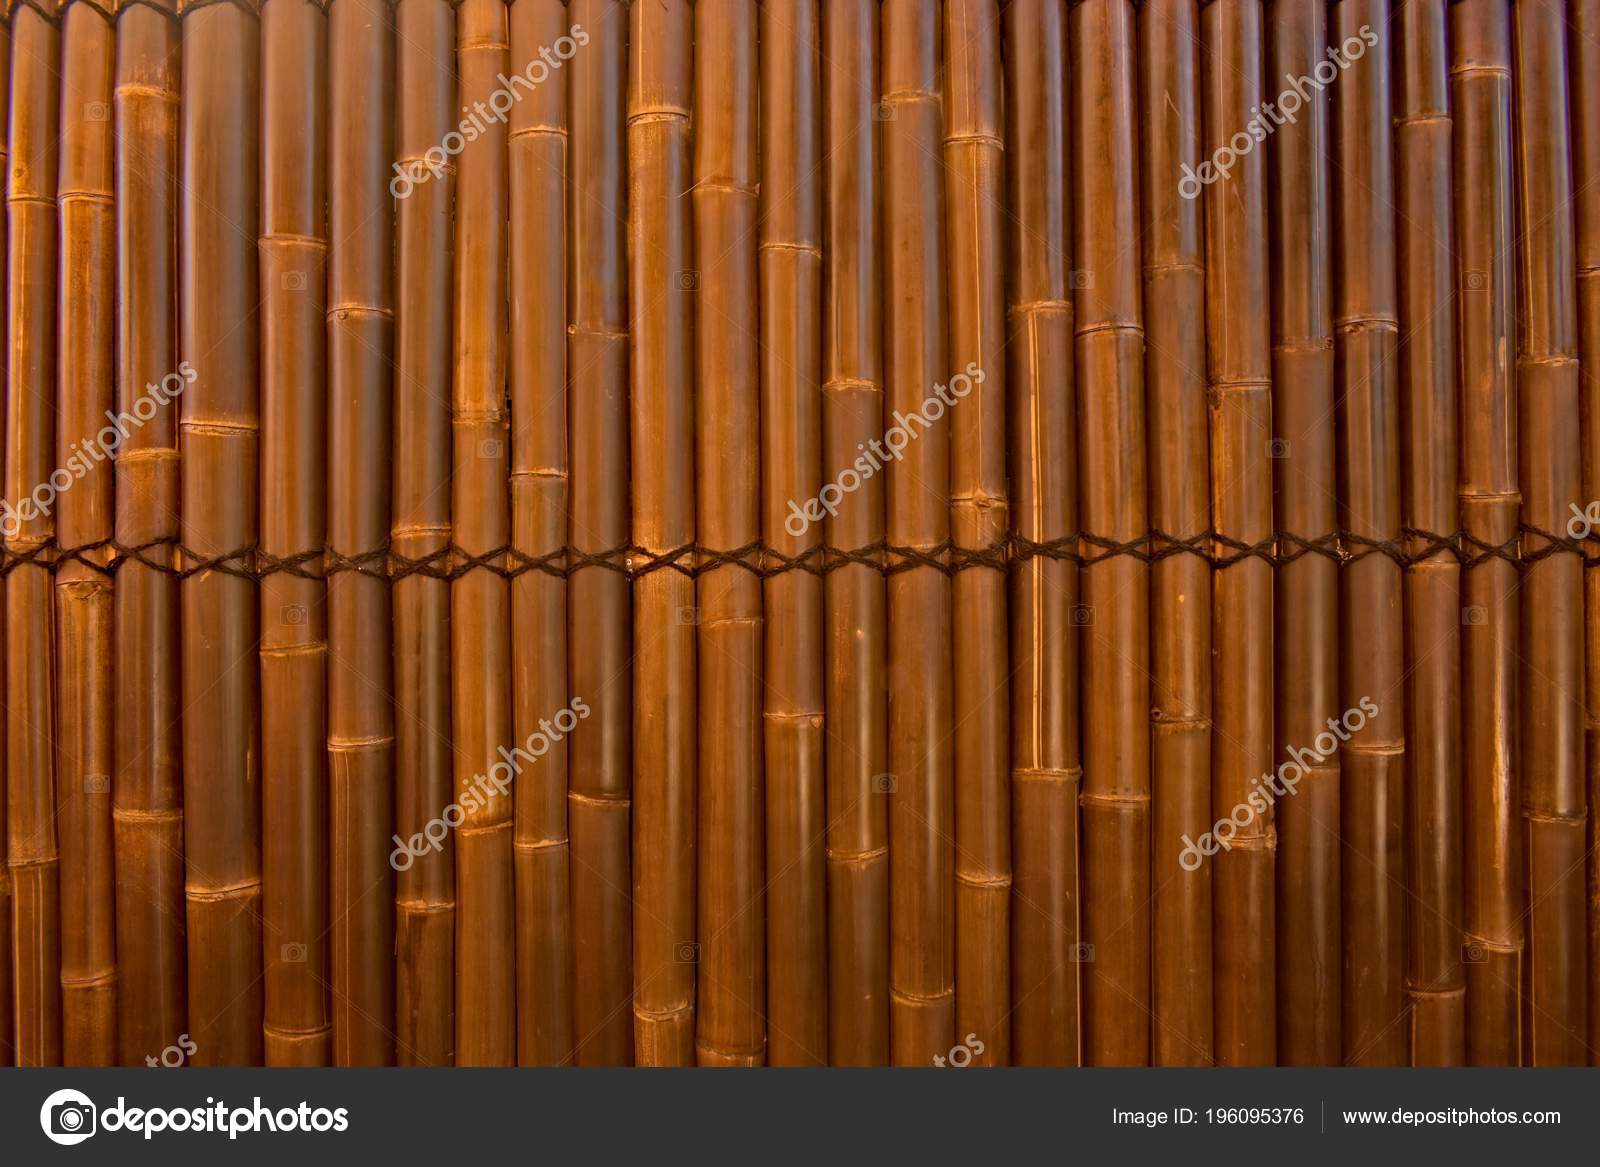 Images: bamboo fencing | Bamboo Fencing Backyard — Stock